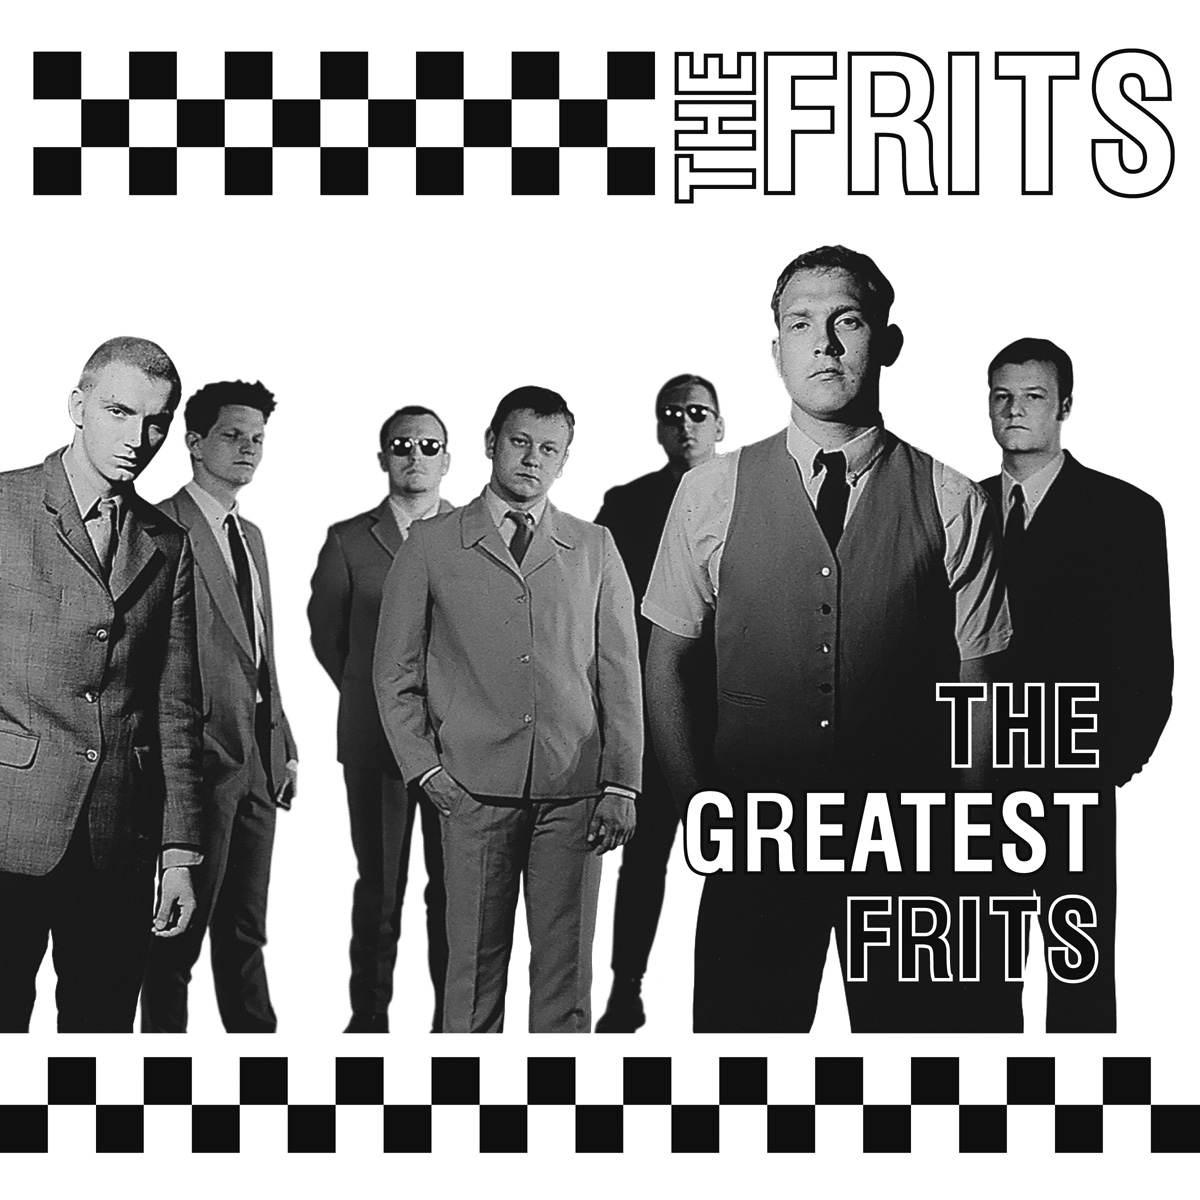 THE FRITS - neues Album THE GREATEST FRITS Release am 22. Januar 2016